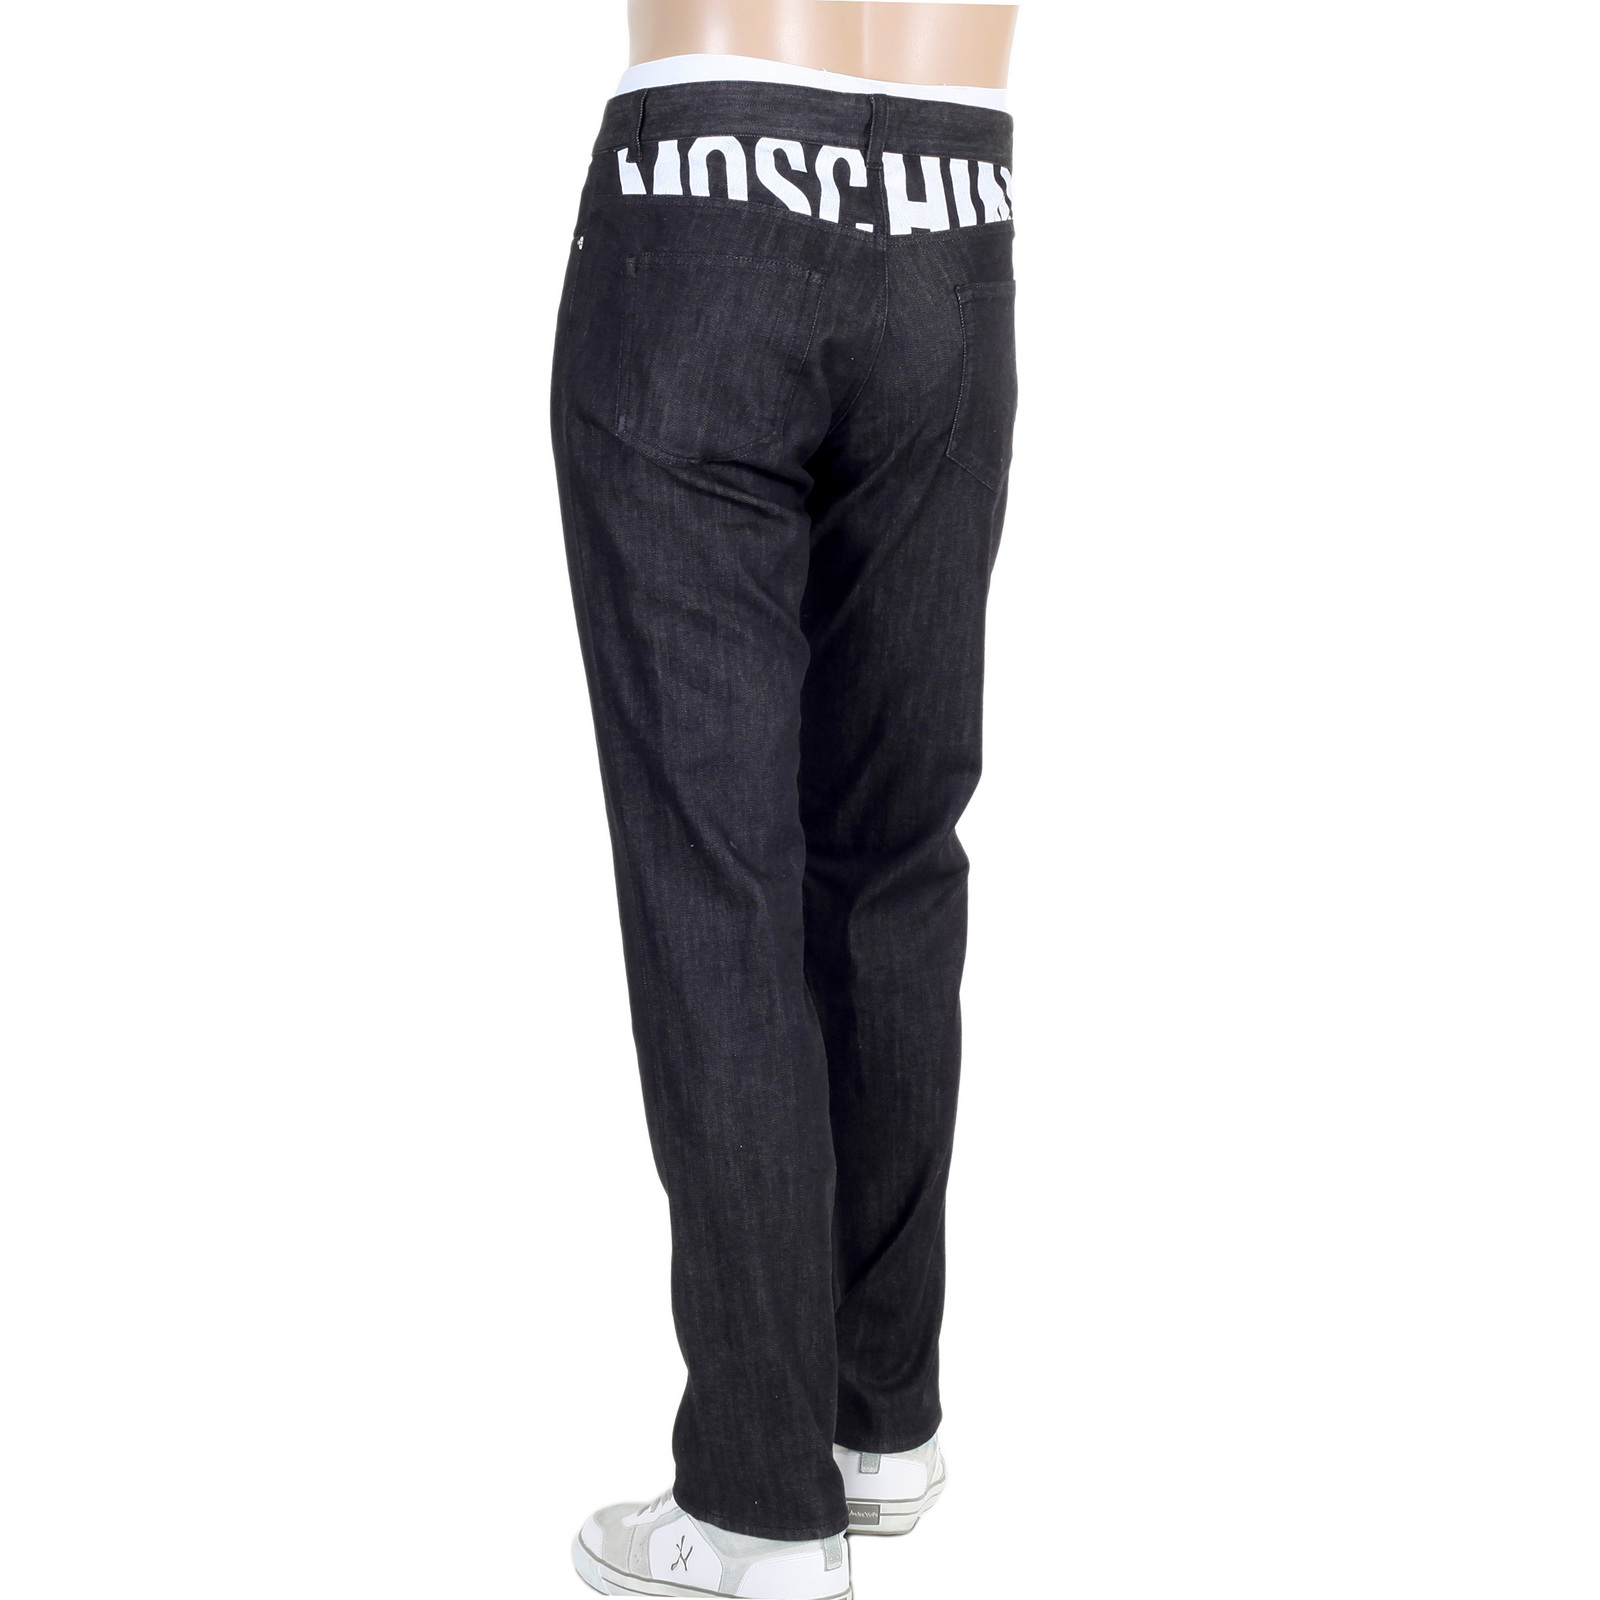 shop now black jeans with white moschino logo at togged